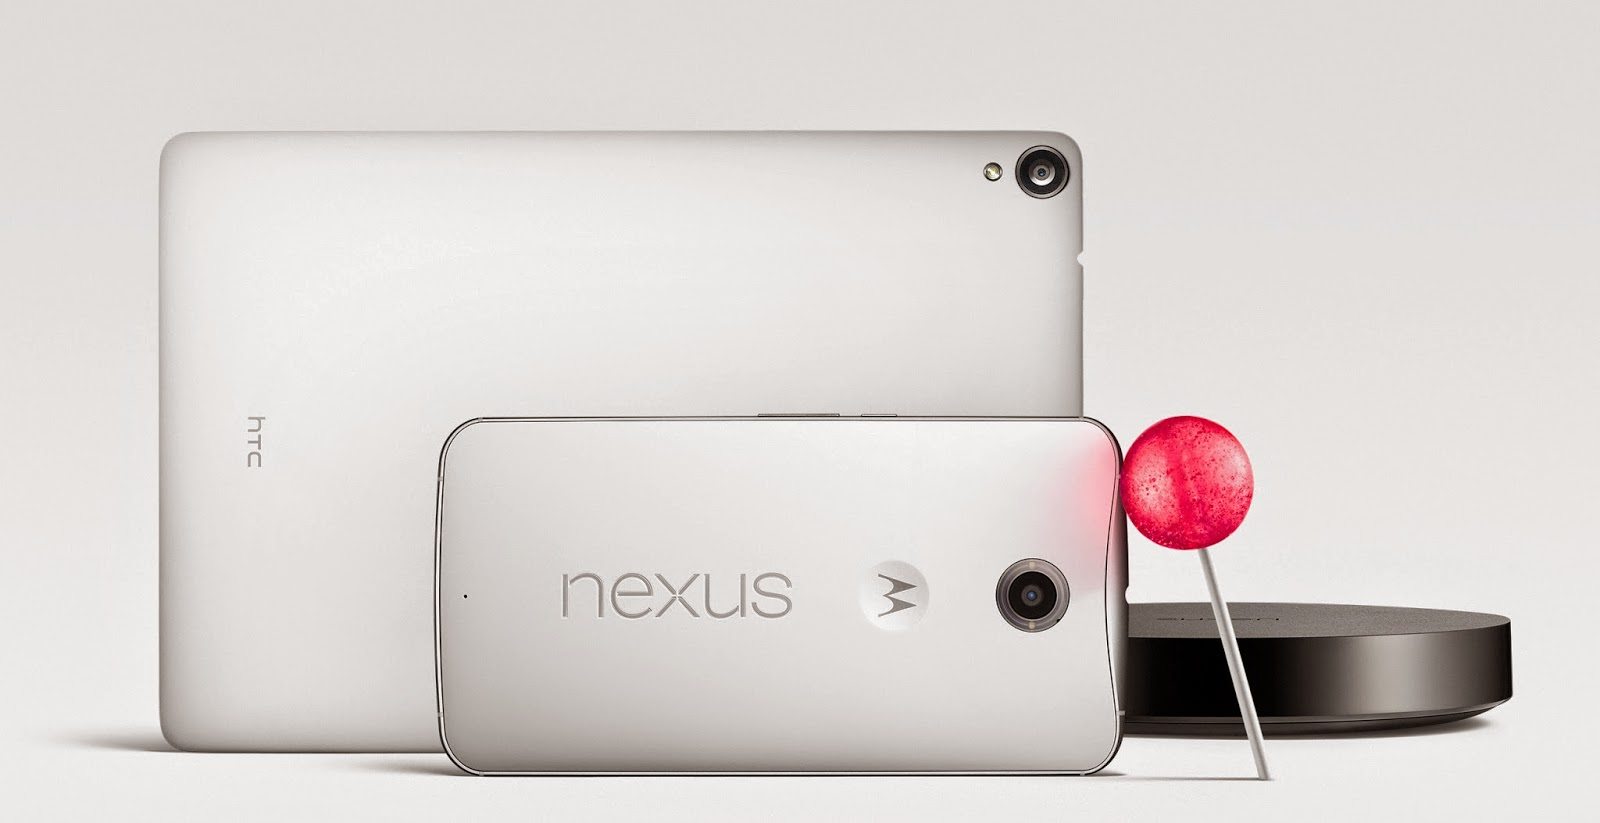 Google Nexus 6 Officially launched